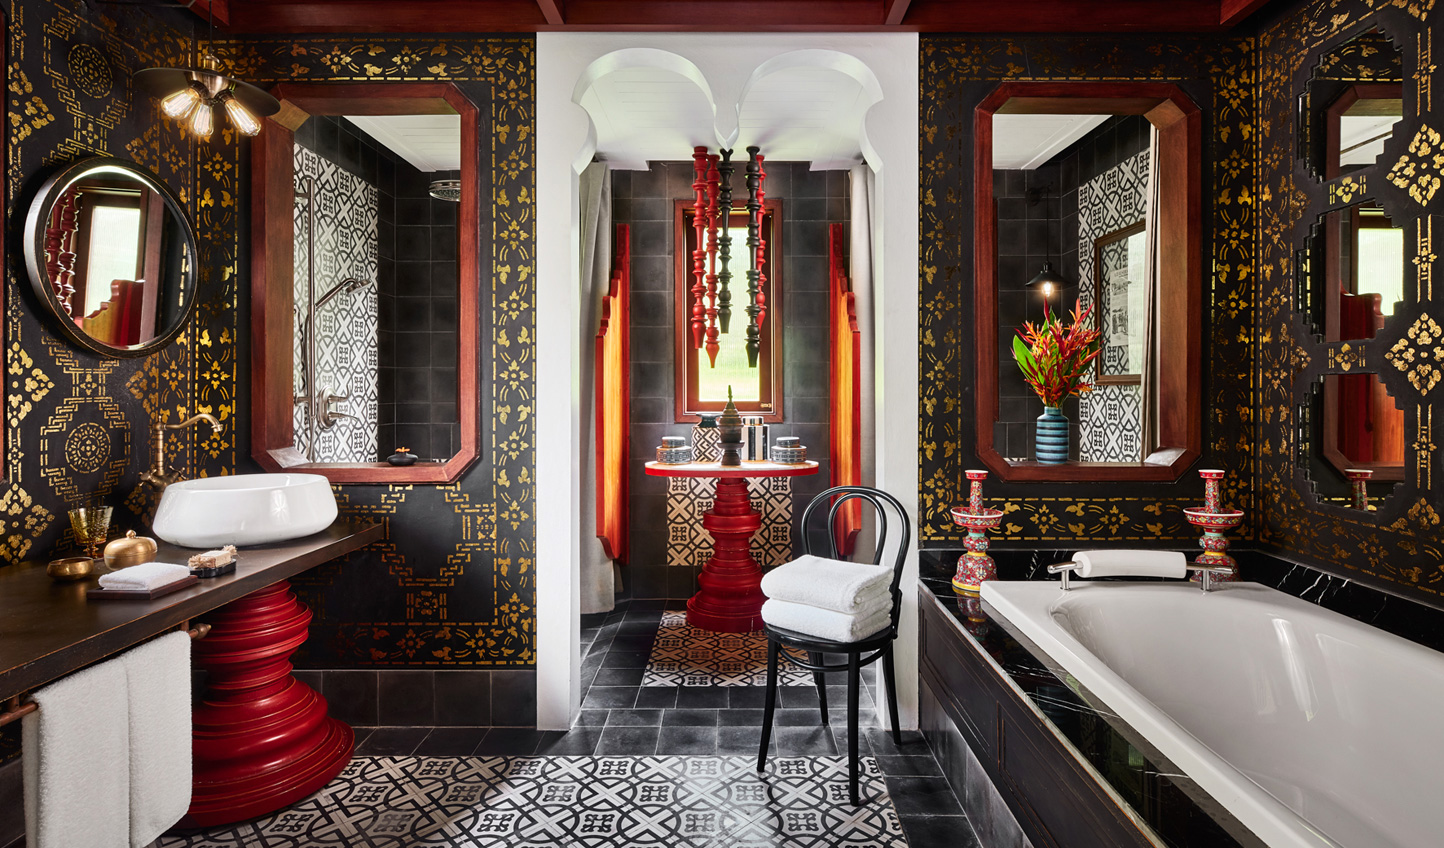 Decadent bathrooms which evoke a take on Laotian luxury